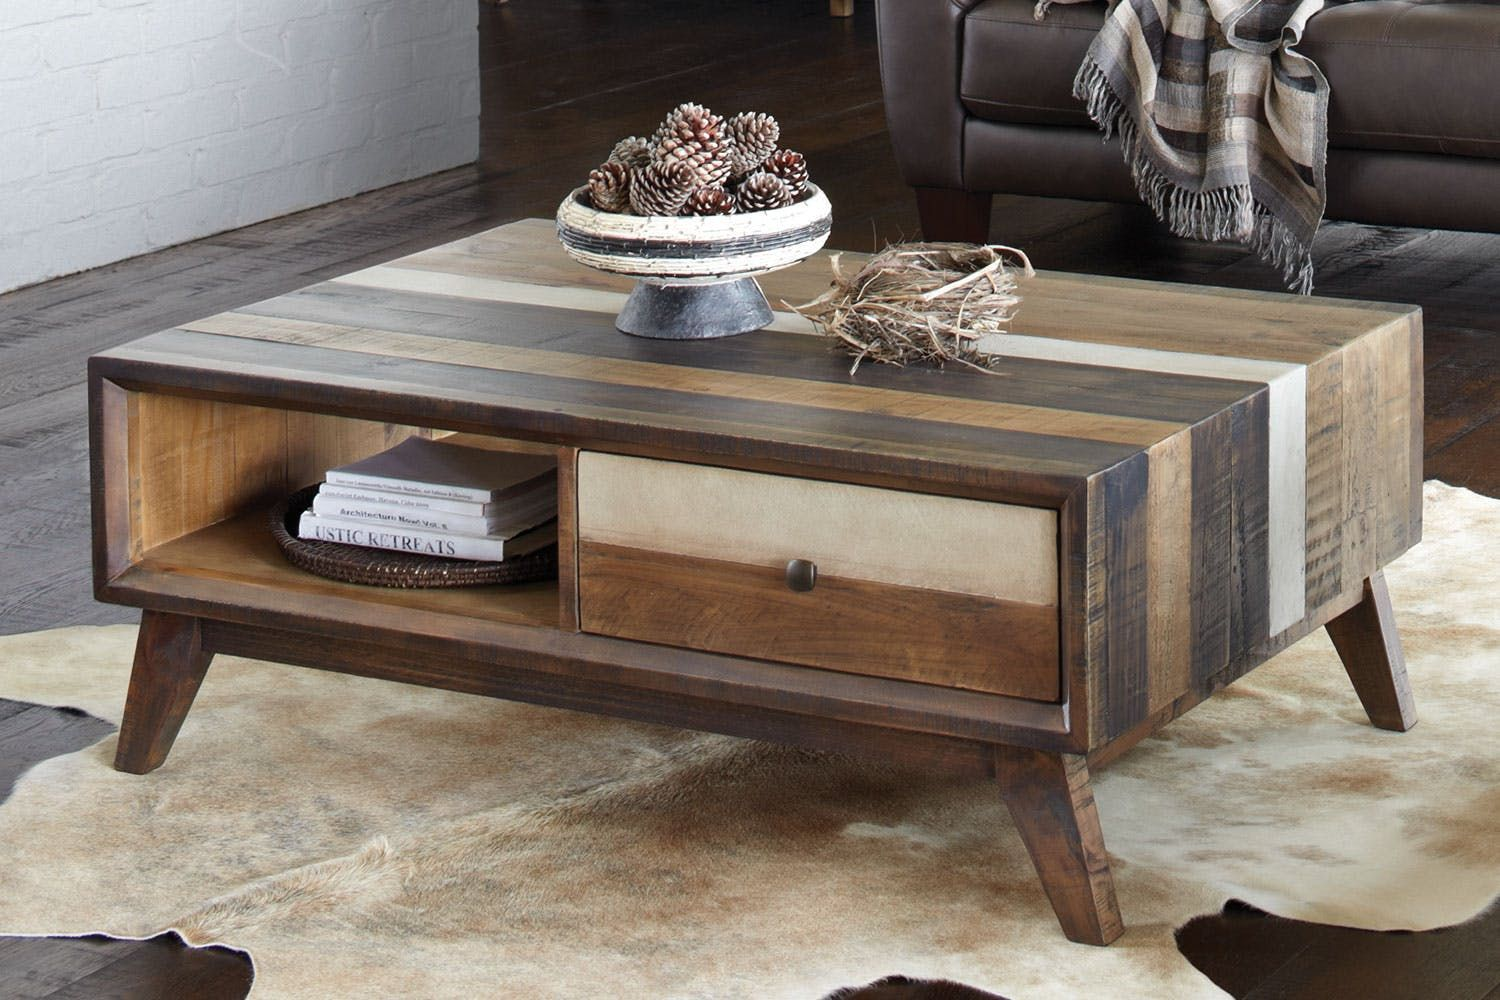 Crisp Coffee Table By Insato Furniture Coffee Table Table Lounge Suites [ 1000 x 1500 Pixel ]